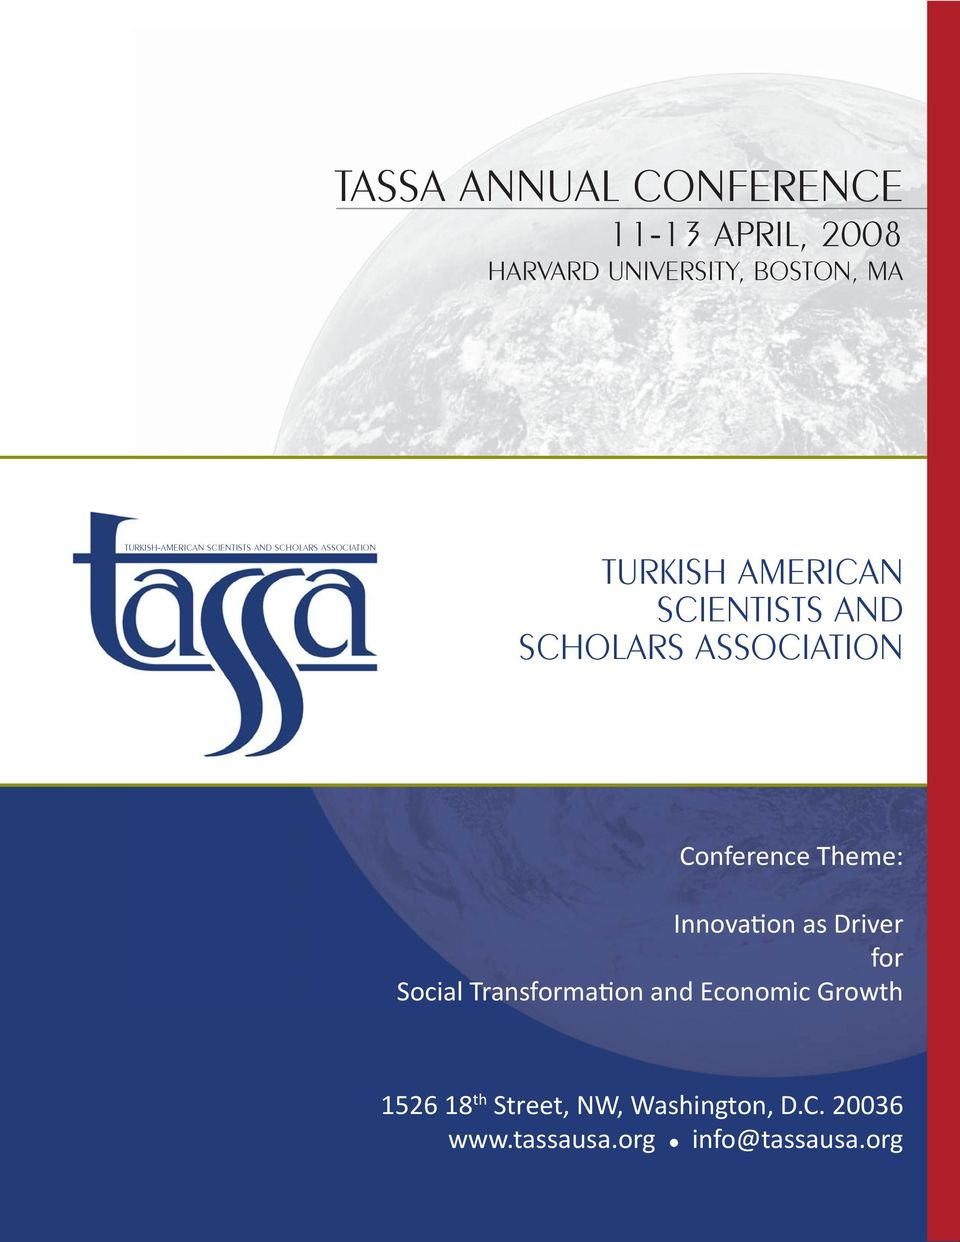 SCHOLARS ASSOCIATION Conference Theme: Innovation as Driver for Social Transformation